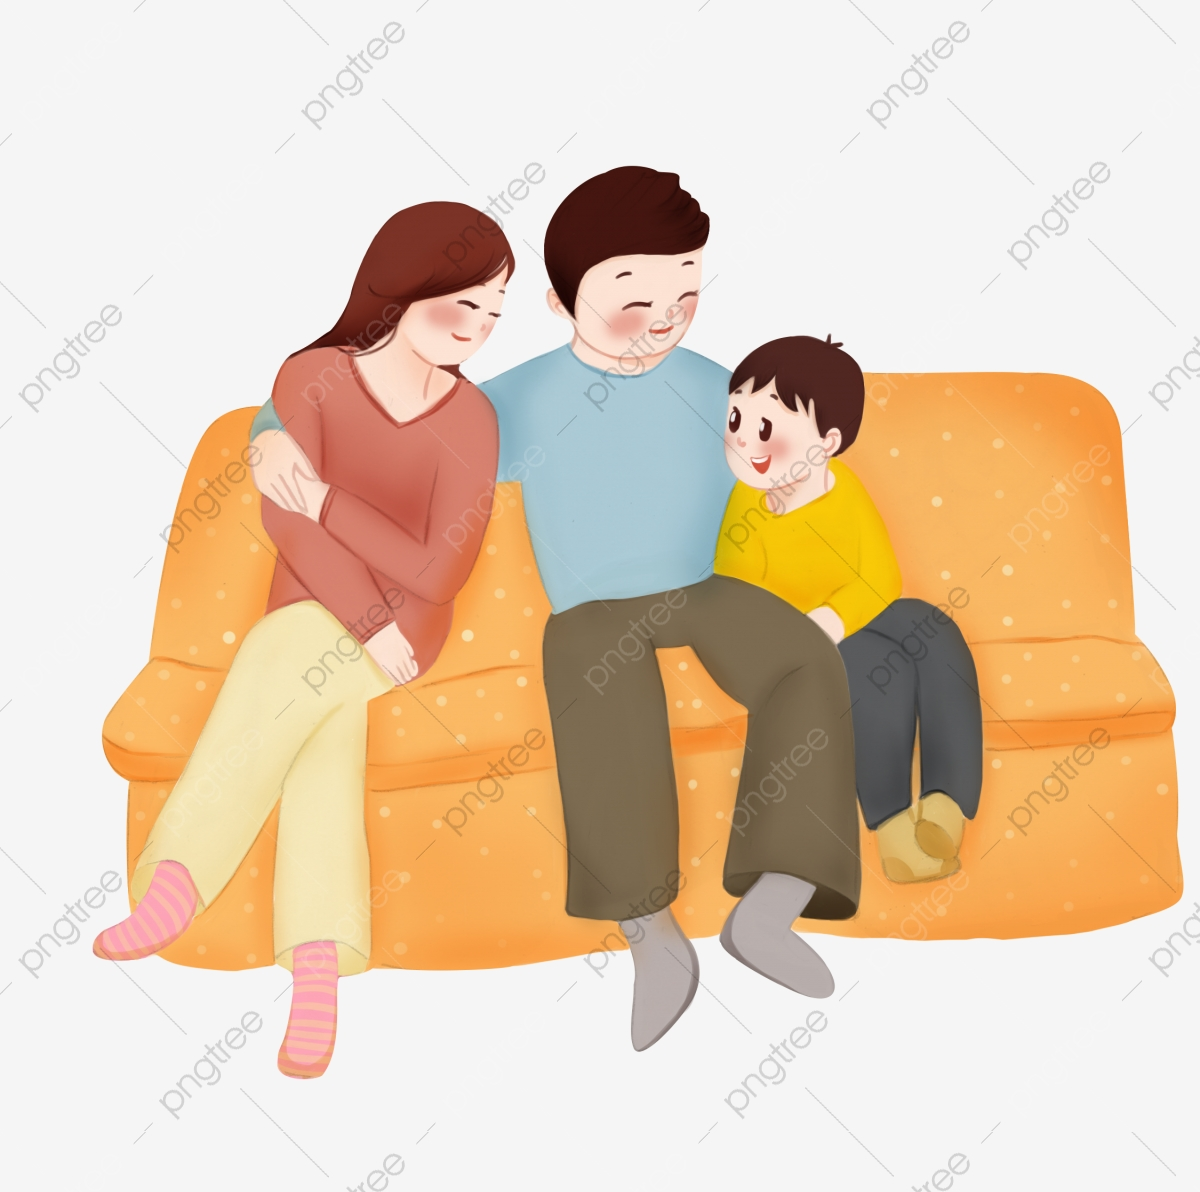 Family Together Happy Family Cartoon Illustration Hand Drawn Reunion Illustration Yellow Sofa Kind Parent Family Together Png Transparent Clipart Image And Psd File For Free Download